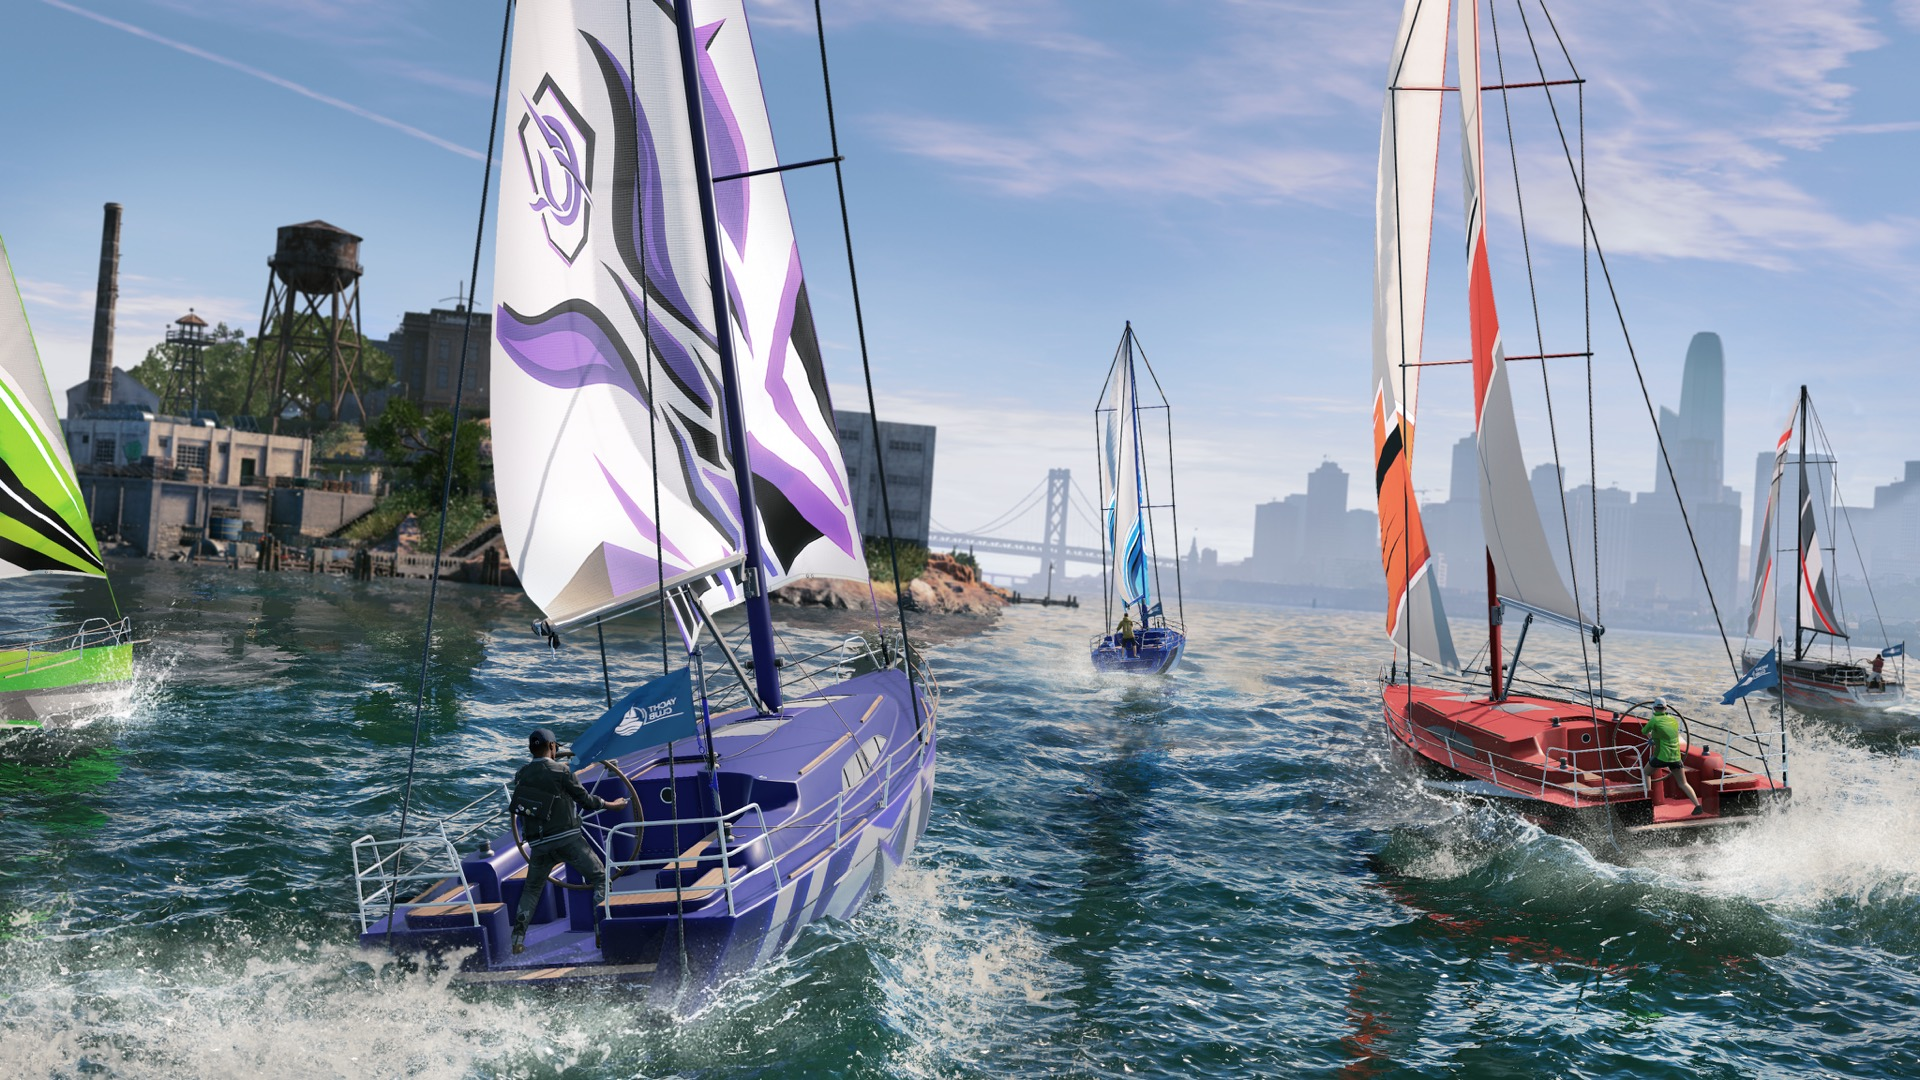 watch dogs 2 update 1.13 now out - adds new multiplayer mode and